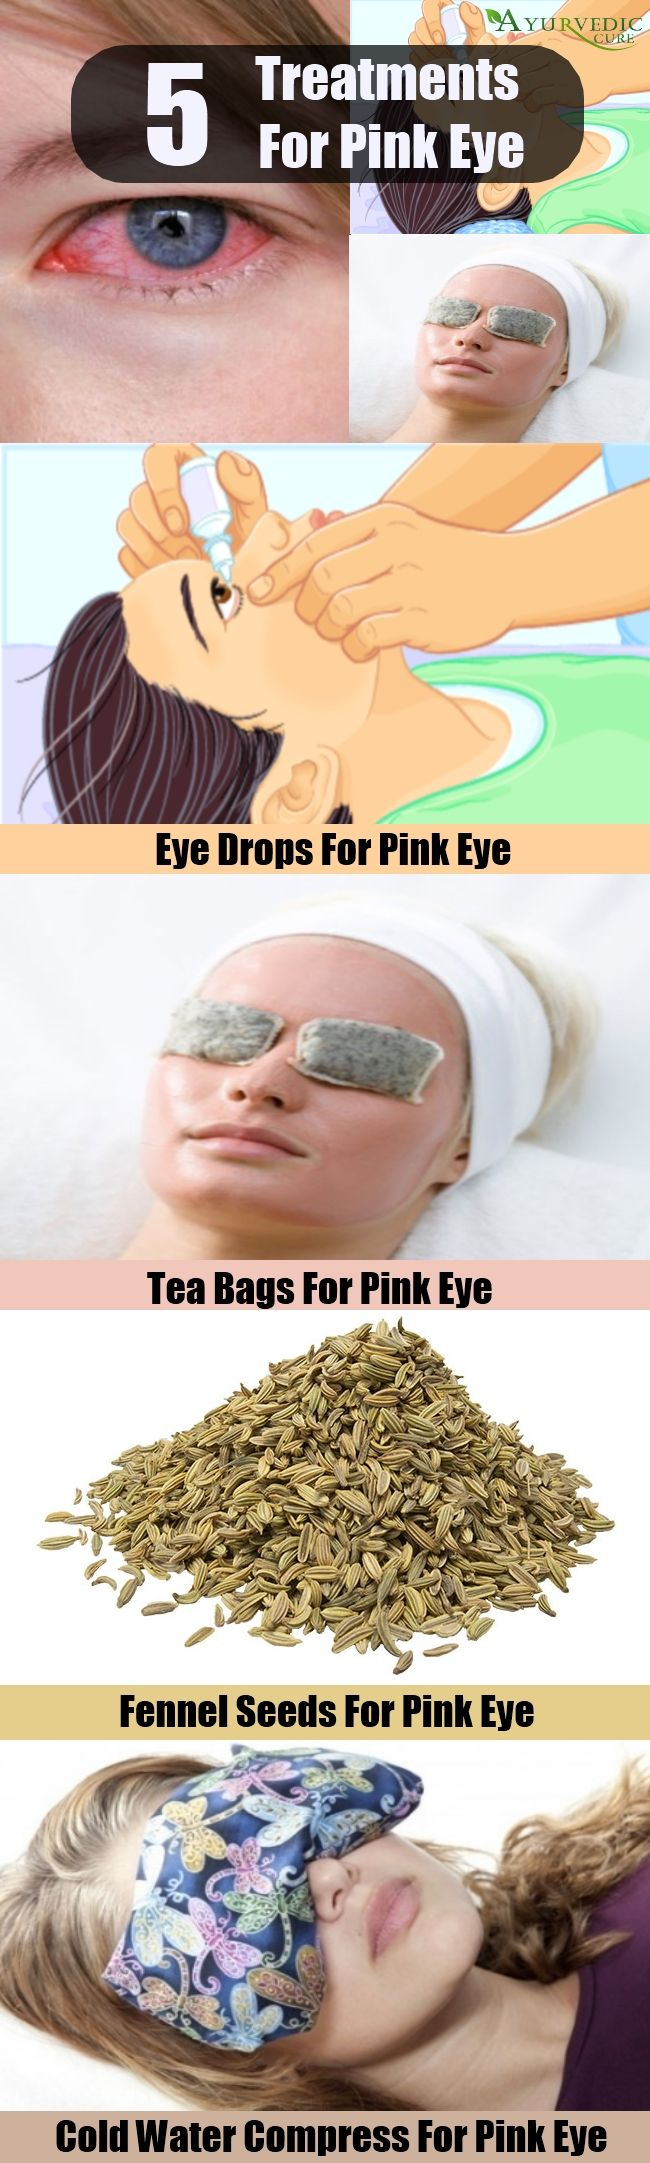 how to clear conjunctivitis naturally